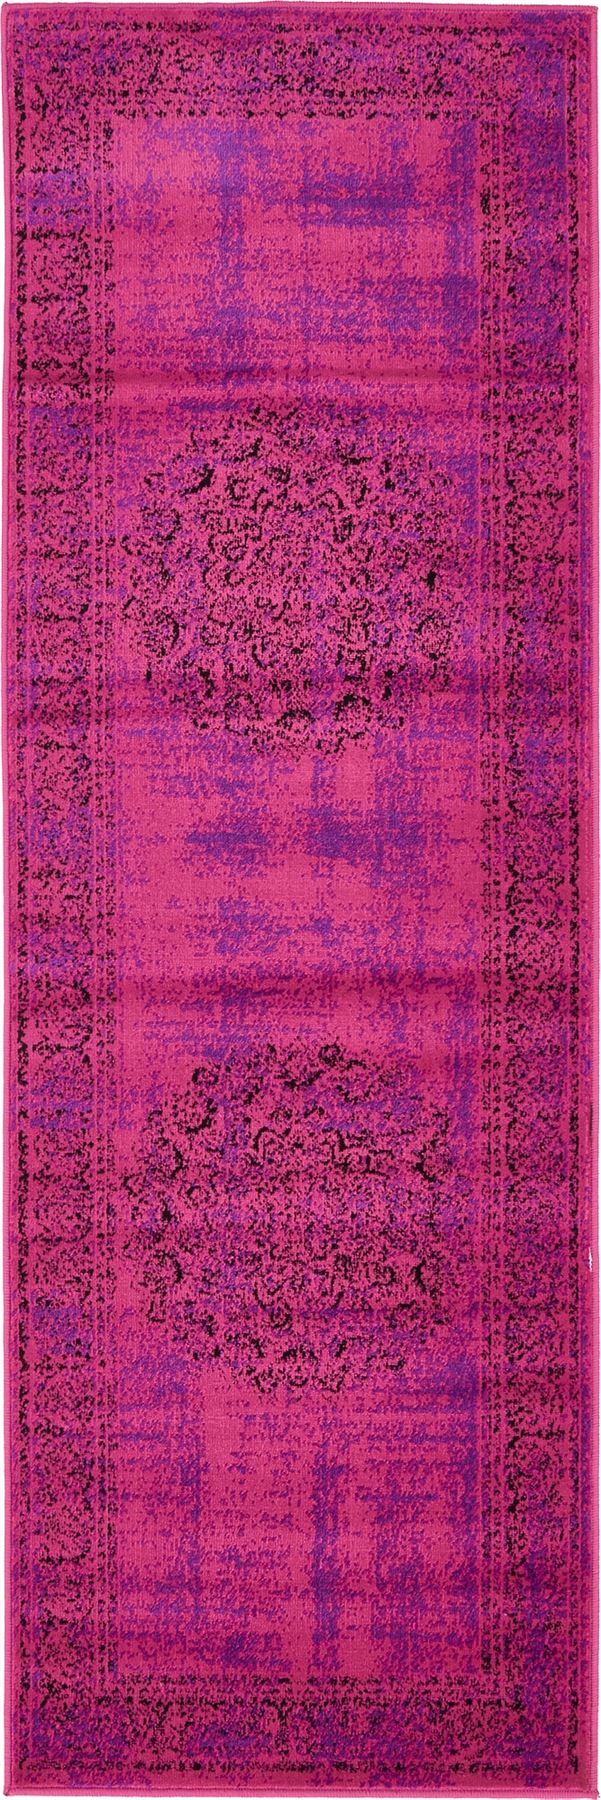 Transitional Purple Faded Large Rug Modern Small